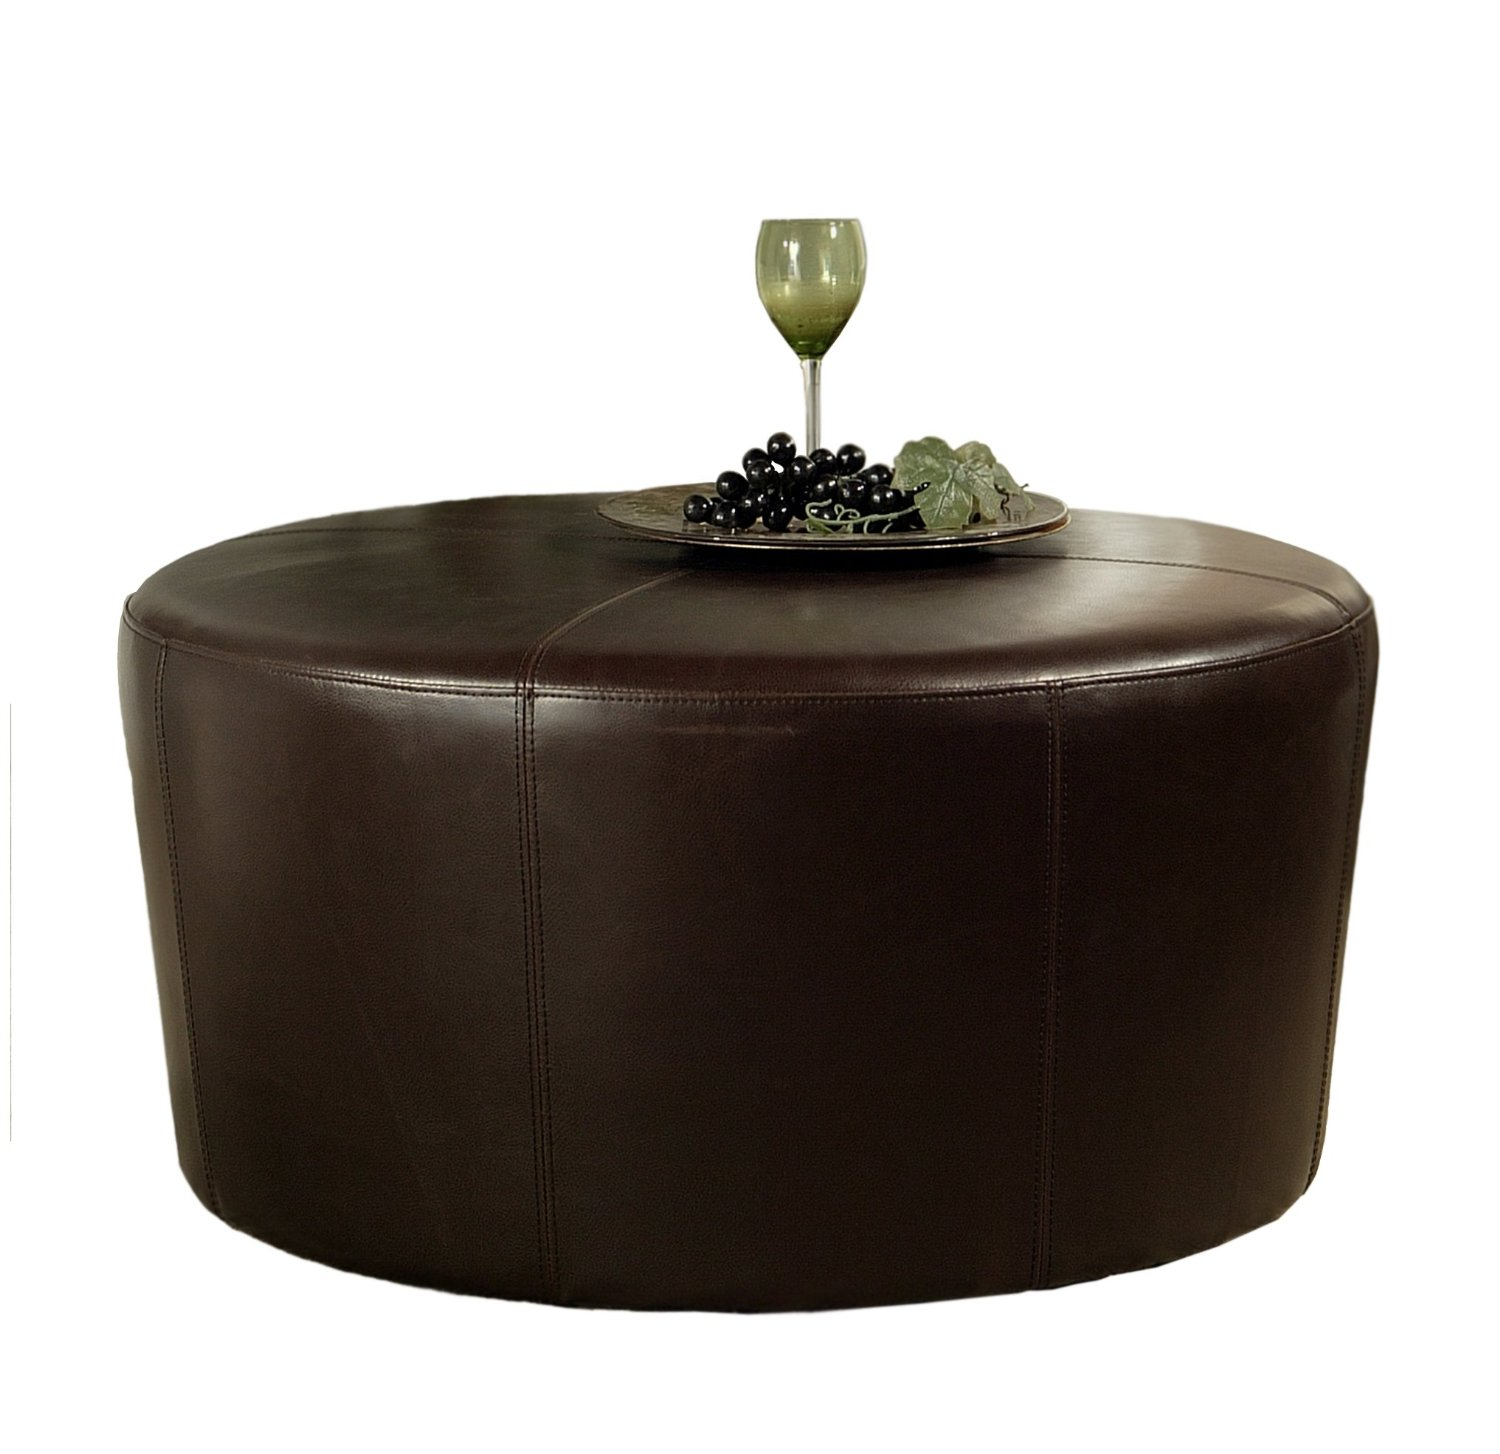 round-leather-ottoman-coffee-table-with-storage-round-leather-coffee-tables-leather-coffee-table-in-ottomans-and-footstools (Image 9 of 10)